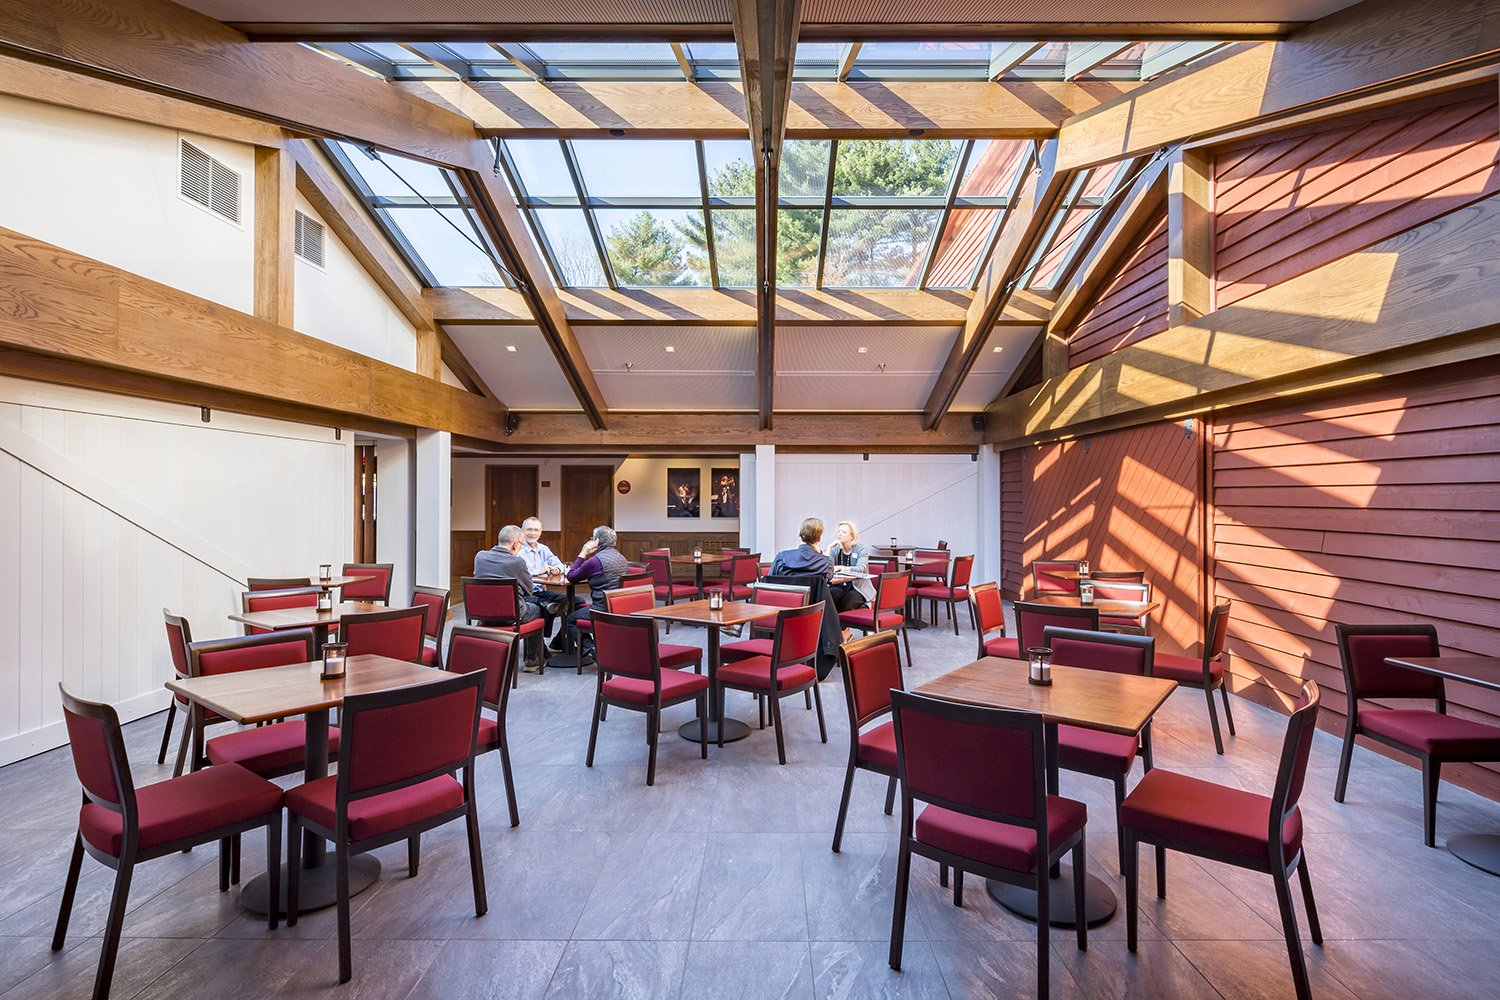 Newly enclosed central courtyard dramatically welcomes patrons to